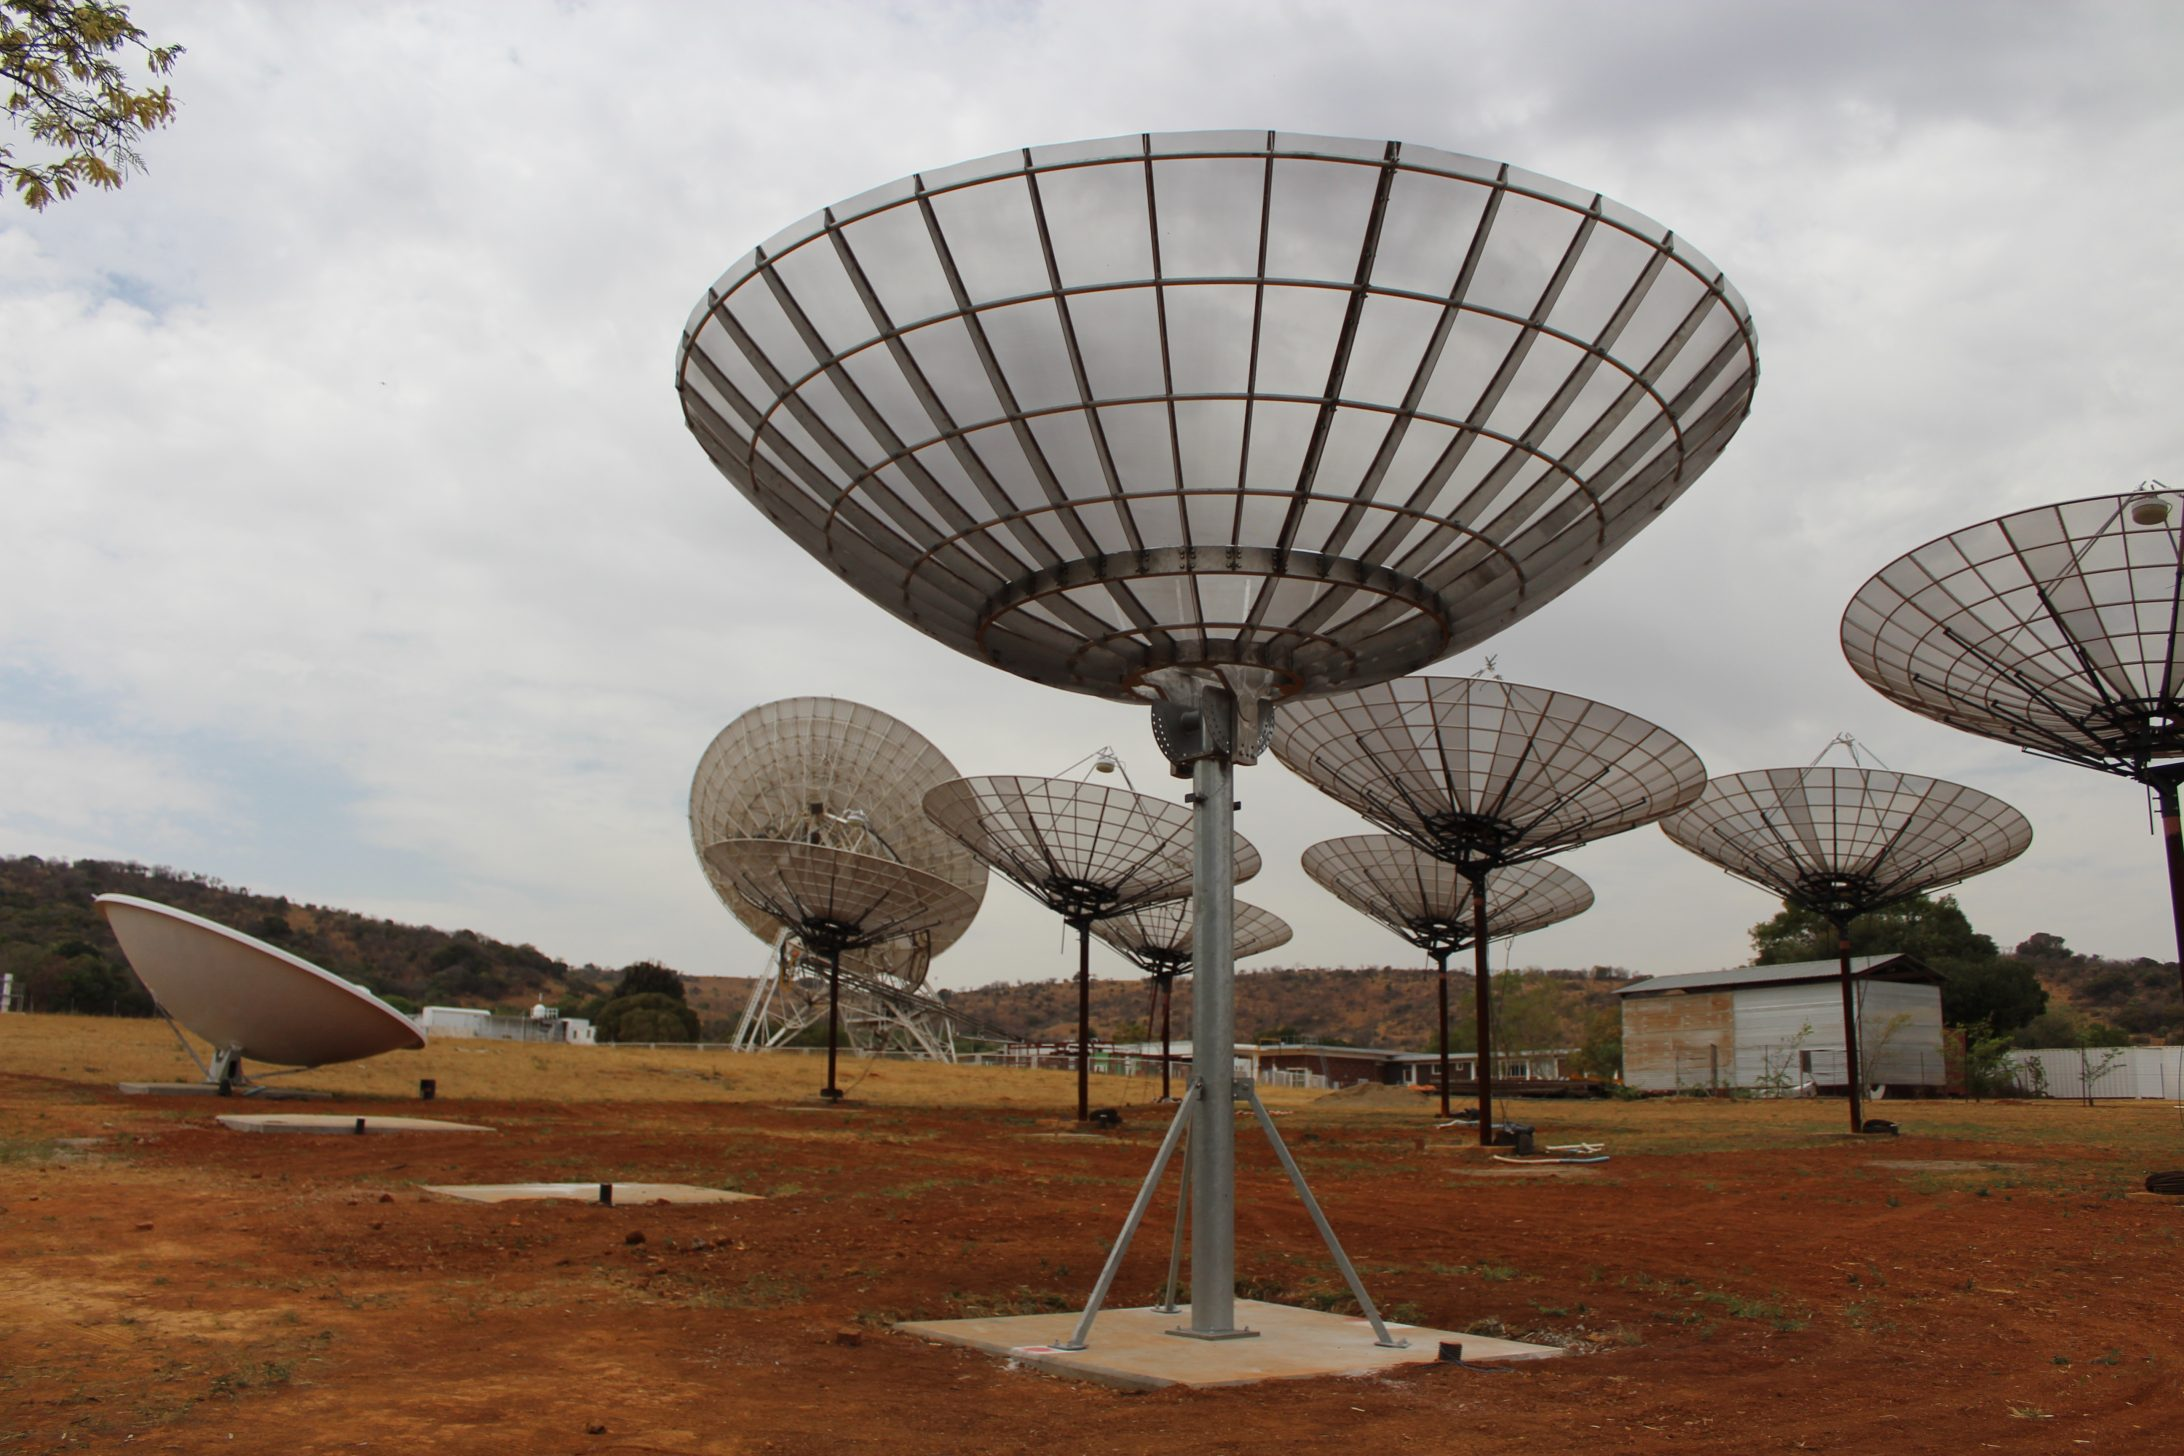 South Africa's HIRAX telescope driving industry engagements